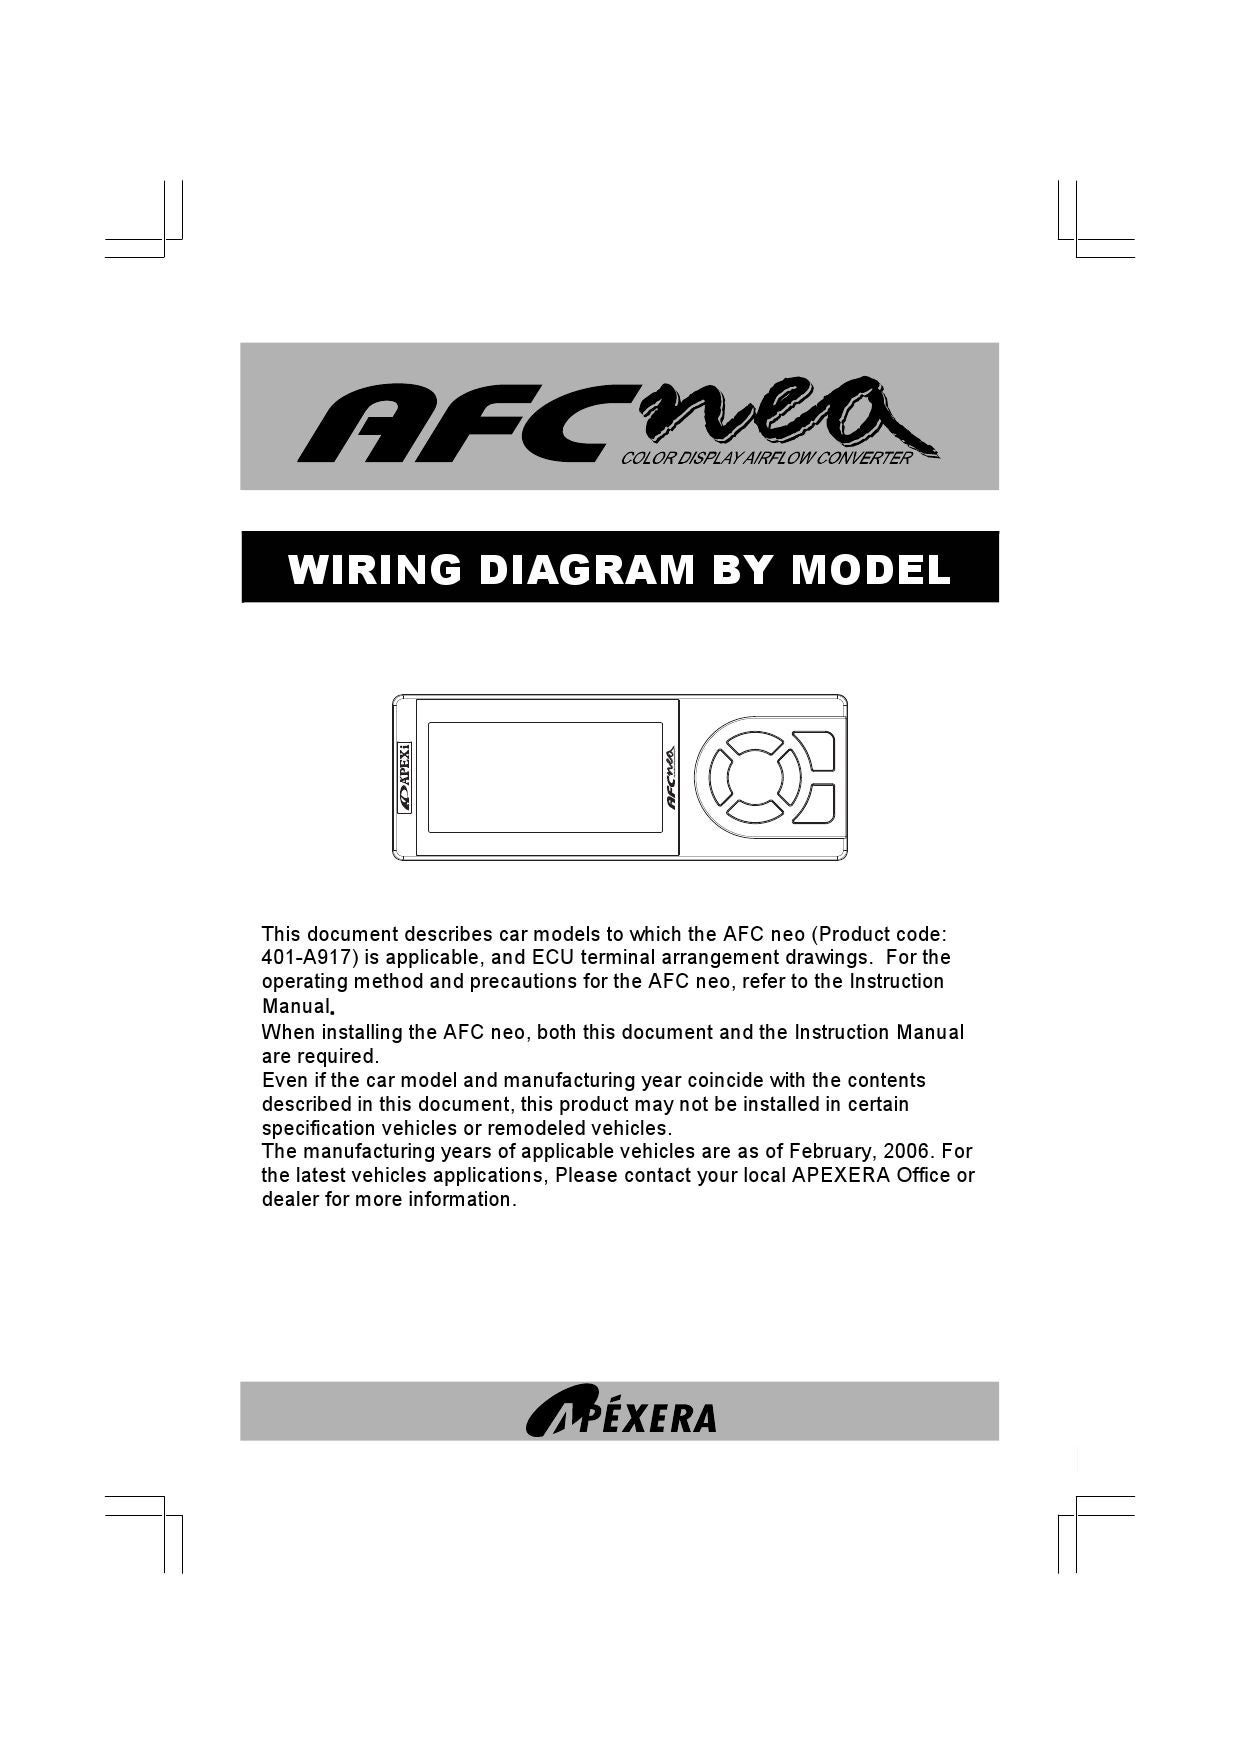 page_1 neo afc wiring diagram by honda & acura club de costa rica issuu wiring diagram 2mz fe at bakdesigns.co